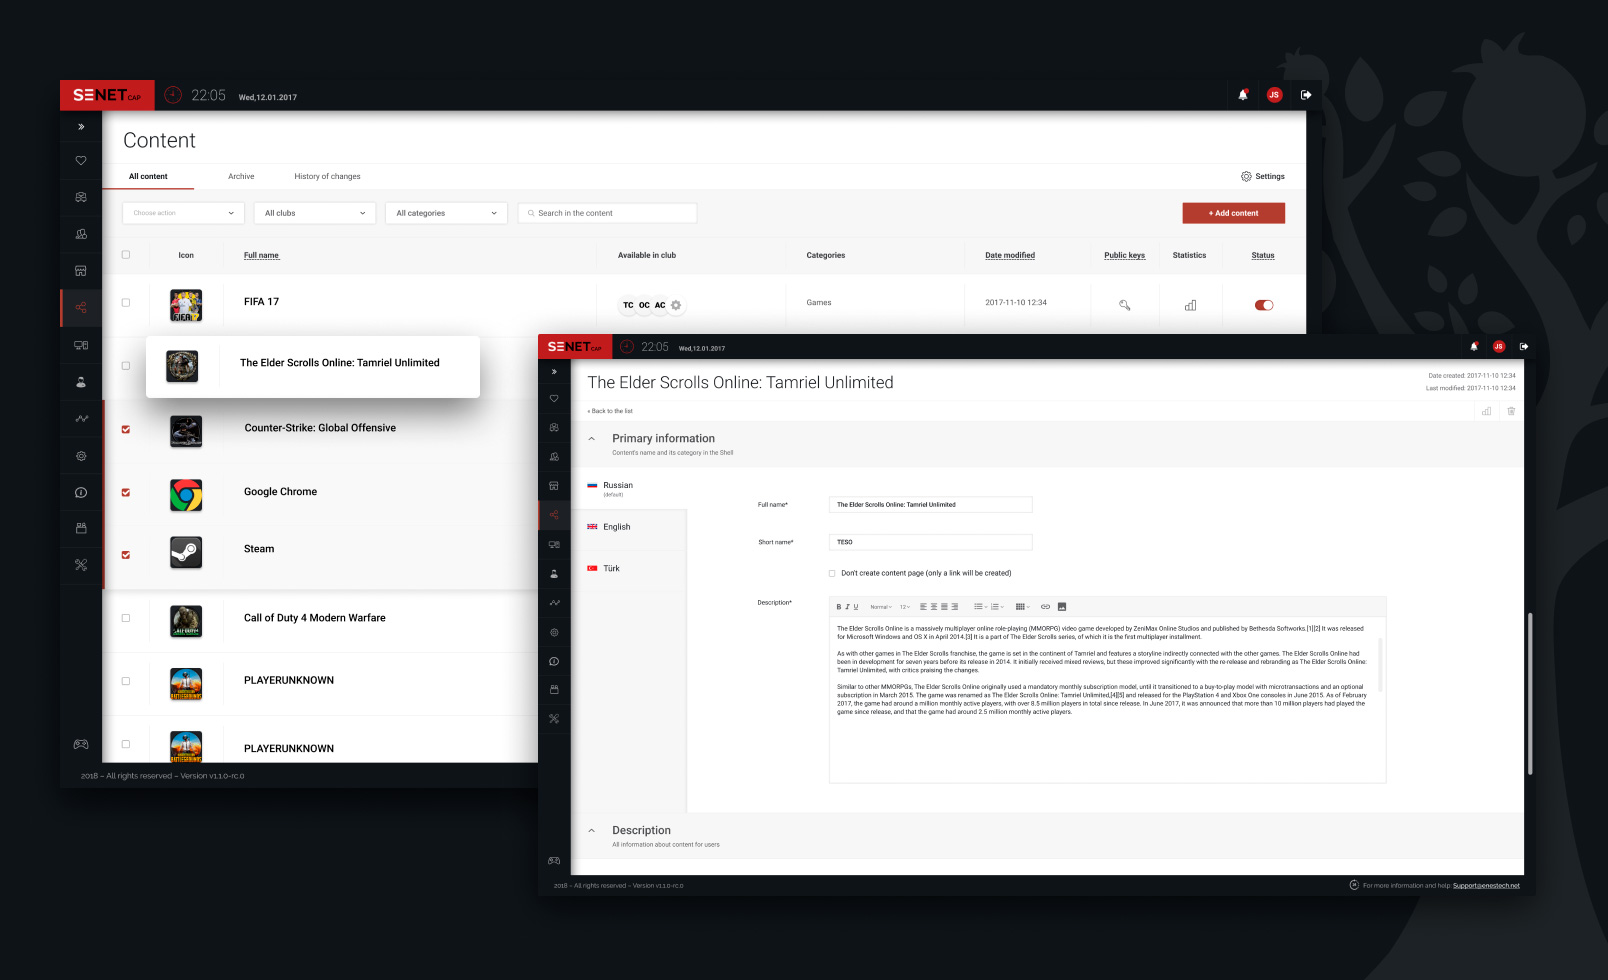 How to add new content to Senet User Interface